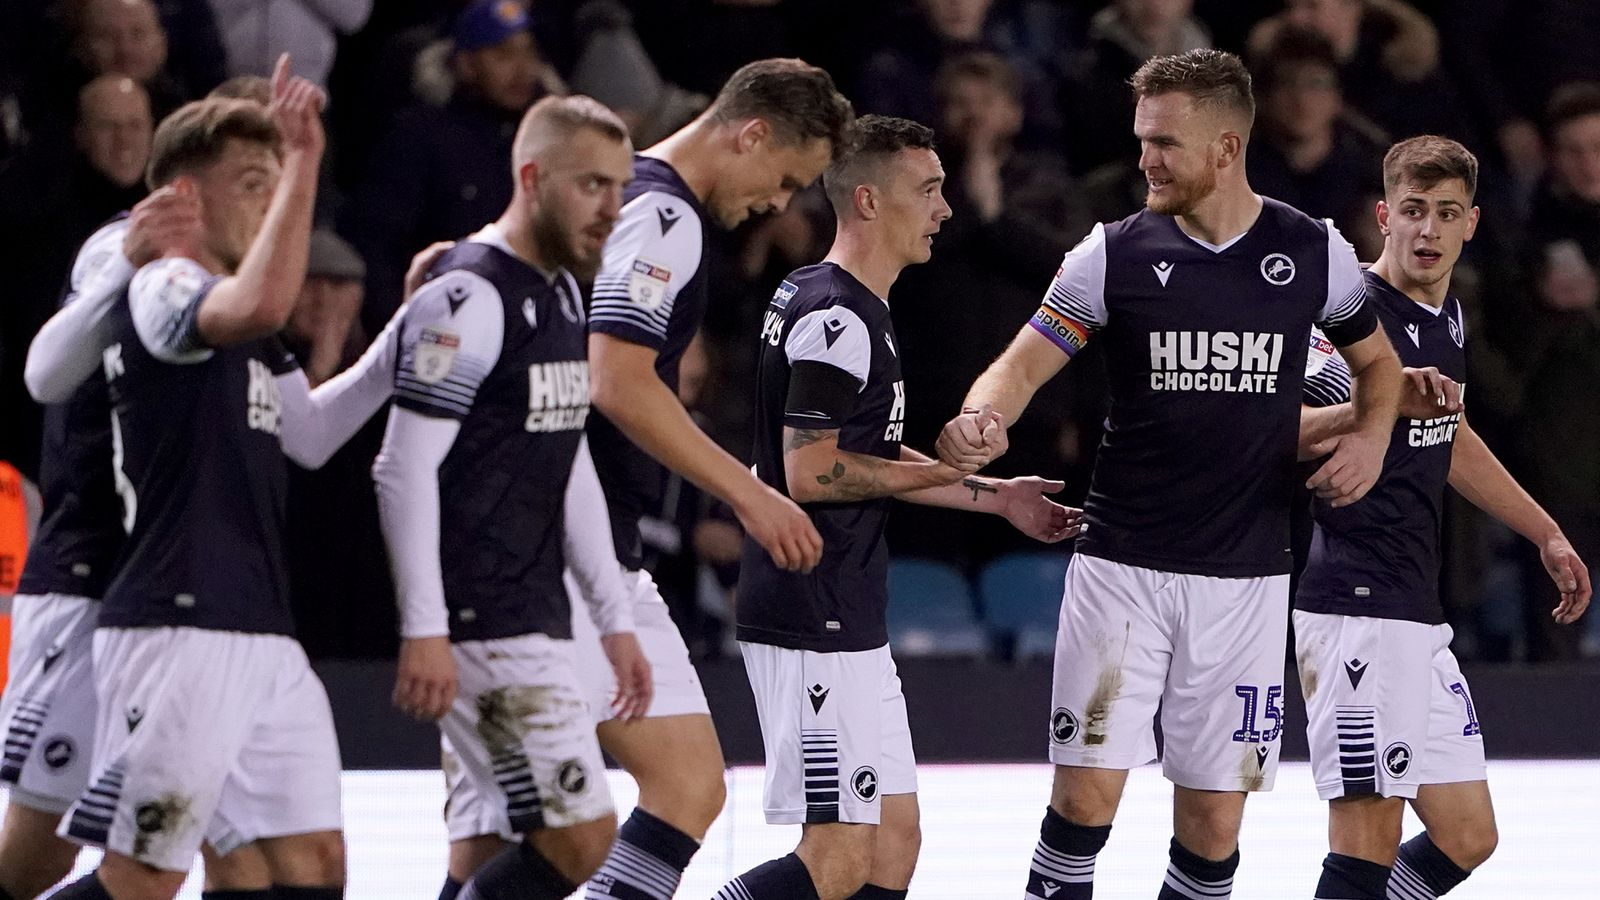 Millwall 2-2 Nottingham Forest: Aiden O'Brien secures late point for Lions